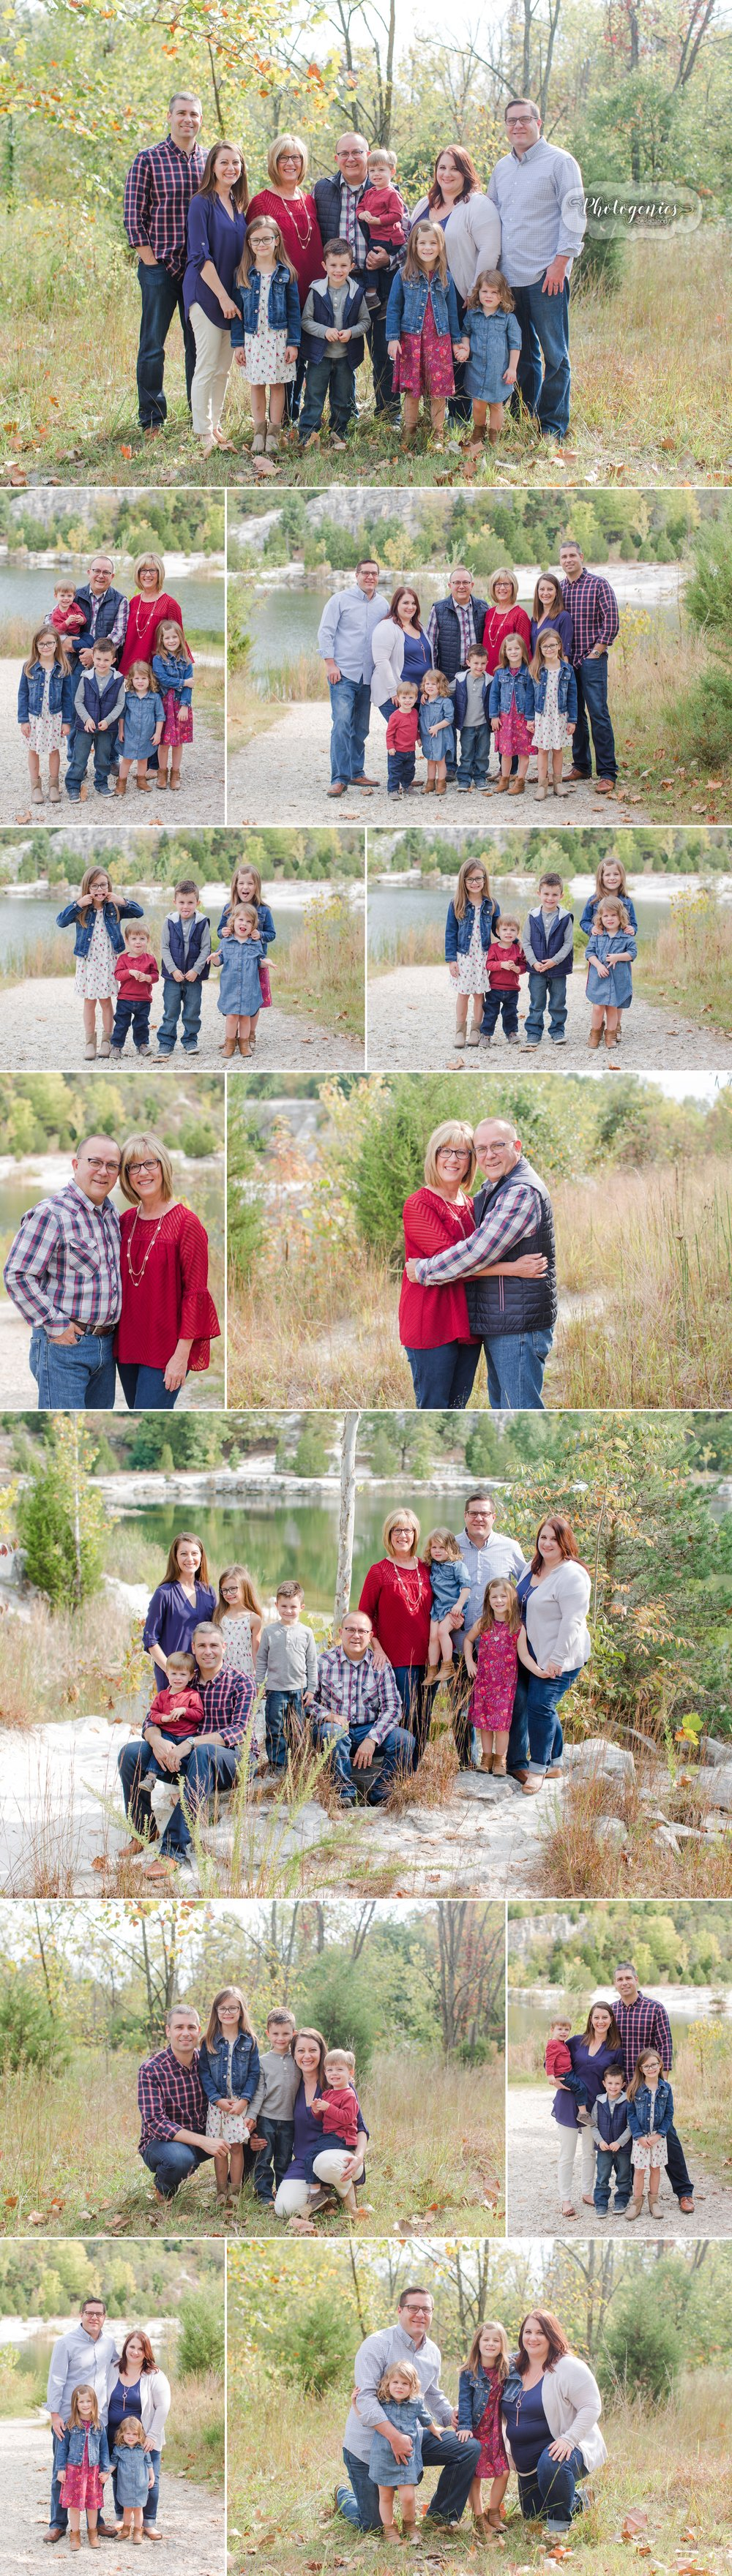 extended_family_session_photography_klondike_park_missouri_augusta_what_to_wear_fall 1